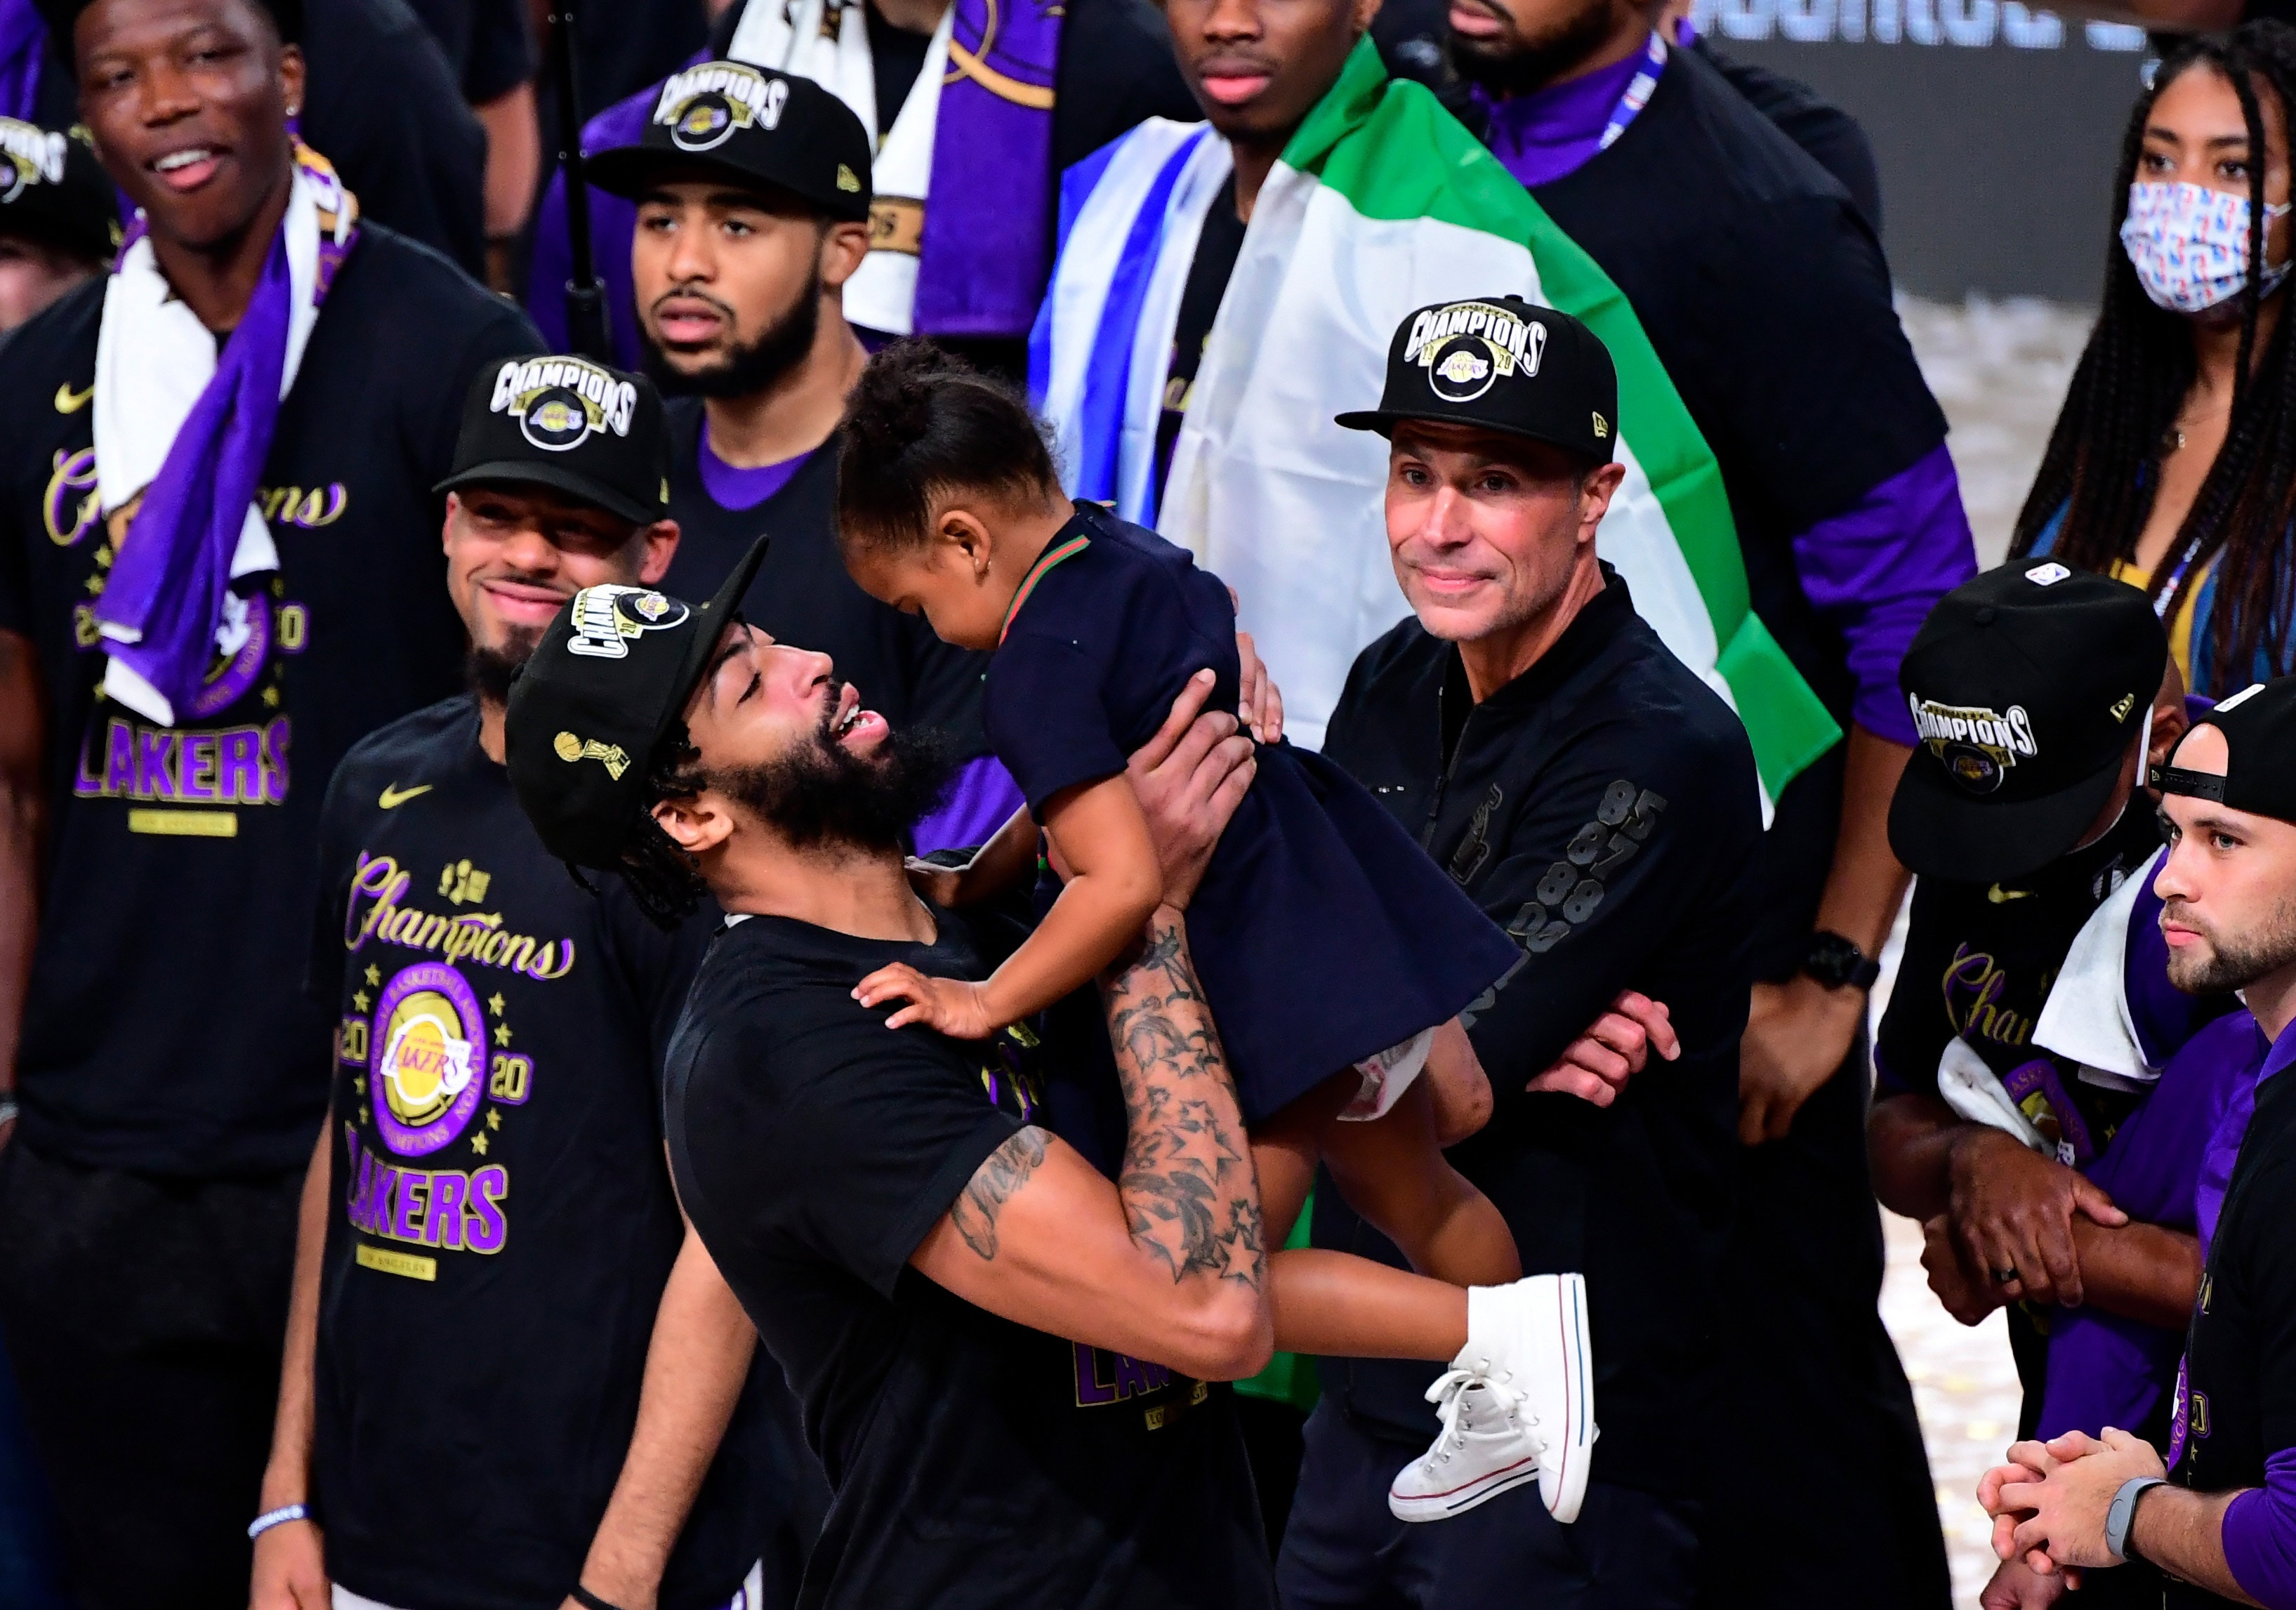 lakers-nba-champions-7